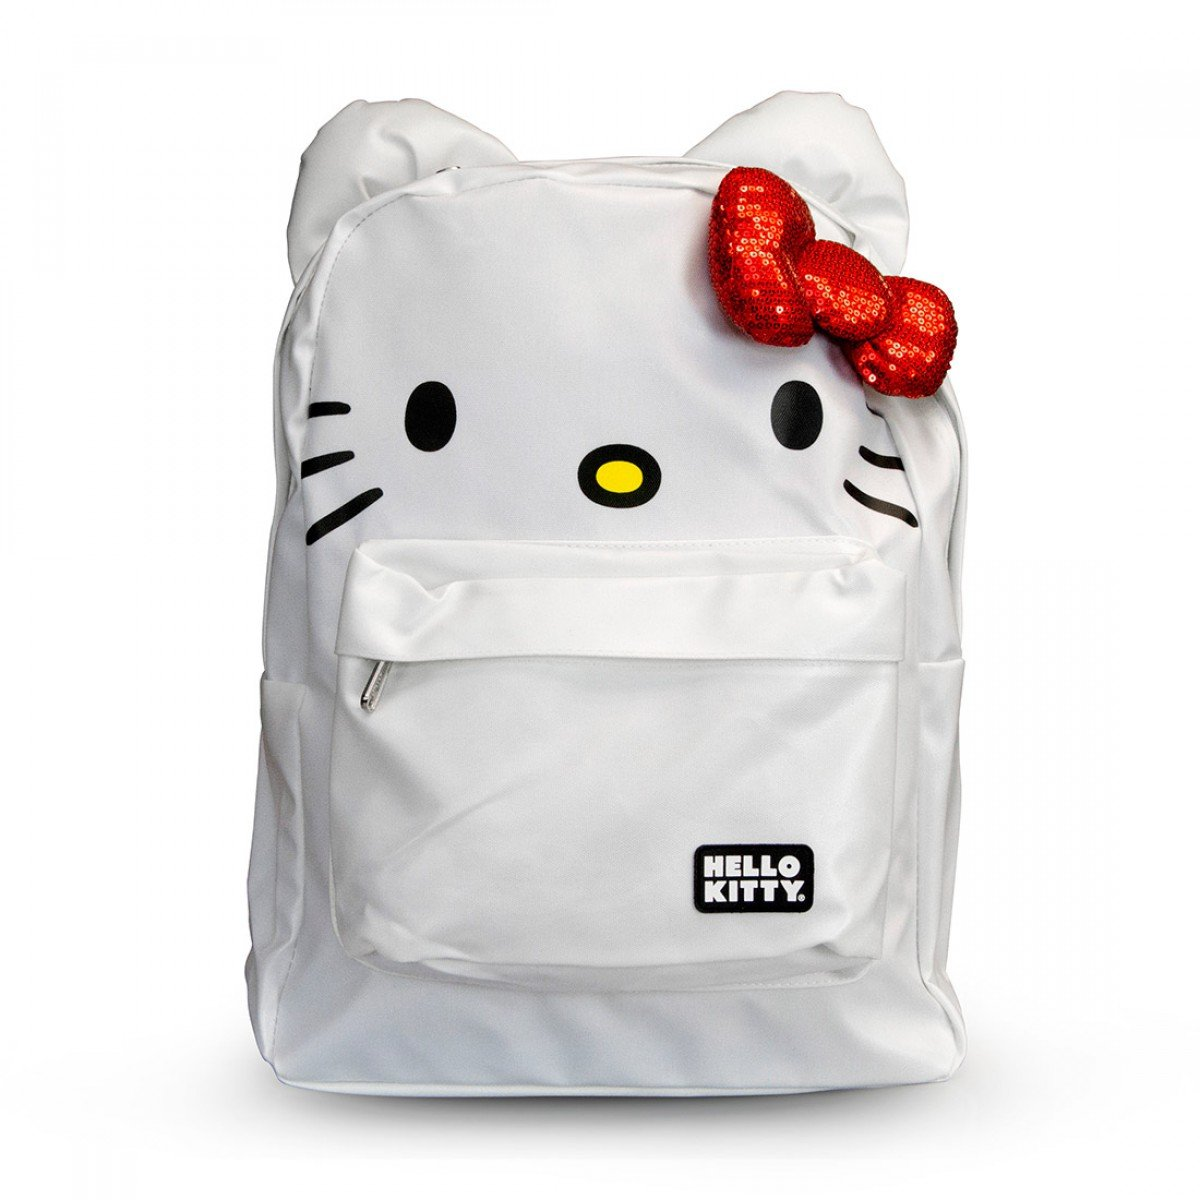 Amazon.com: Hello Kitty Backpack Bag w/ Bow & Ears (Face - White & Red): Beauty